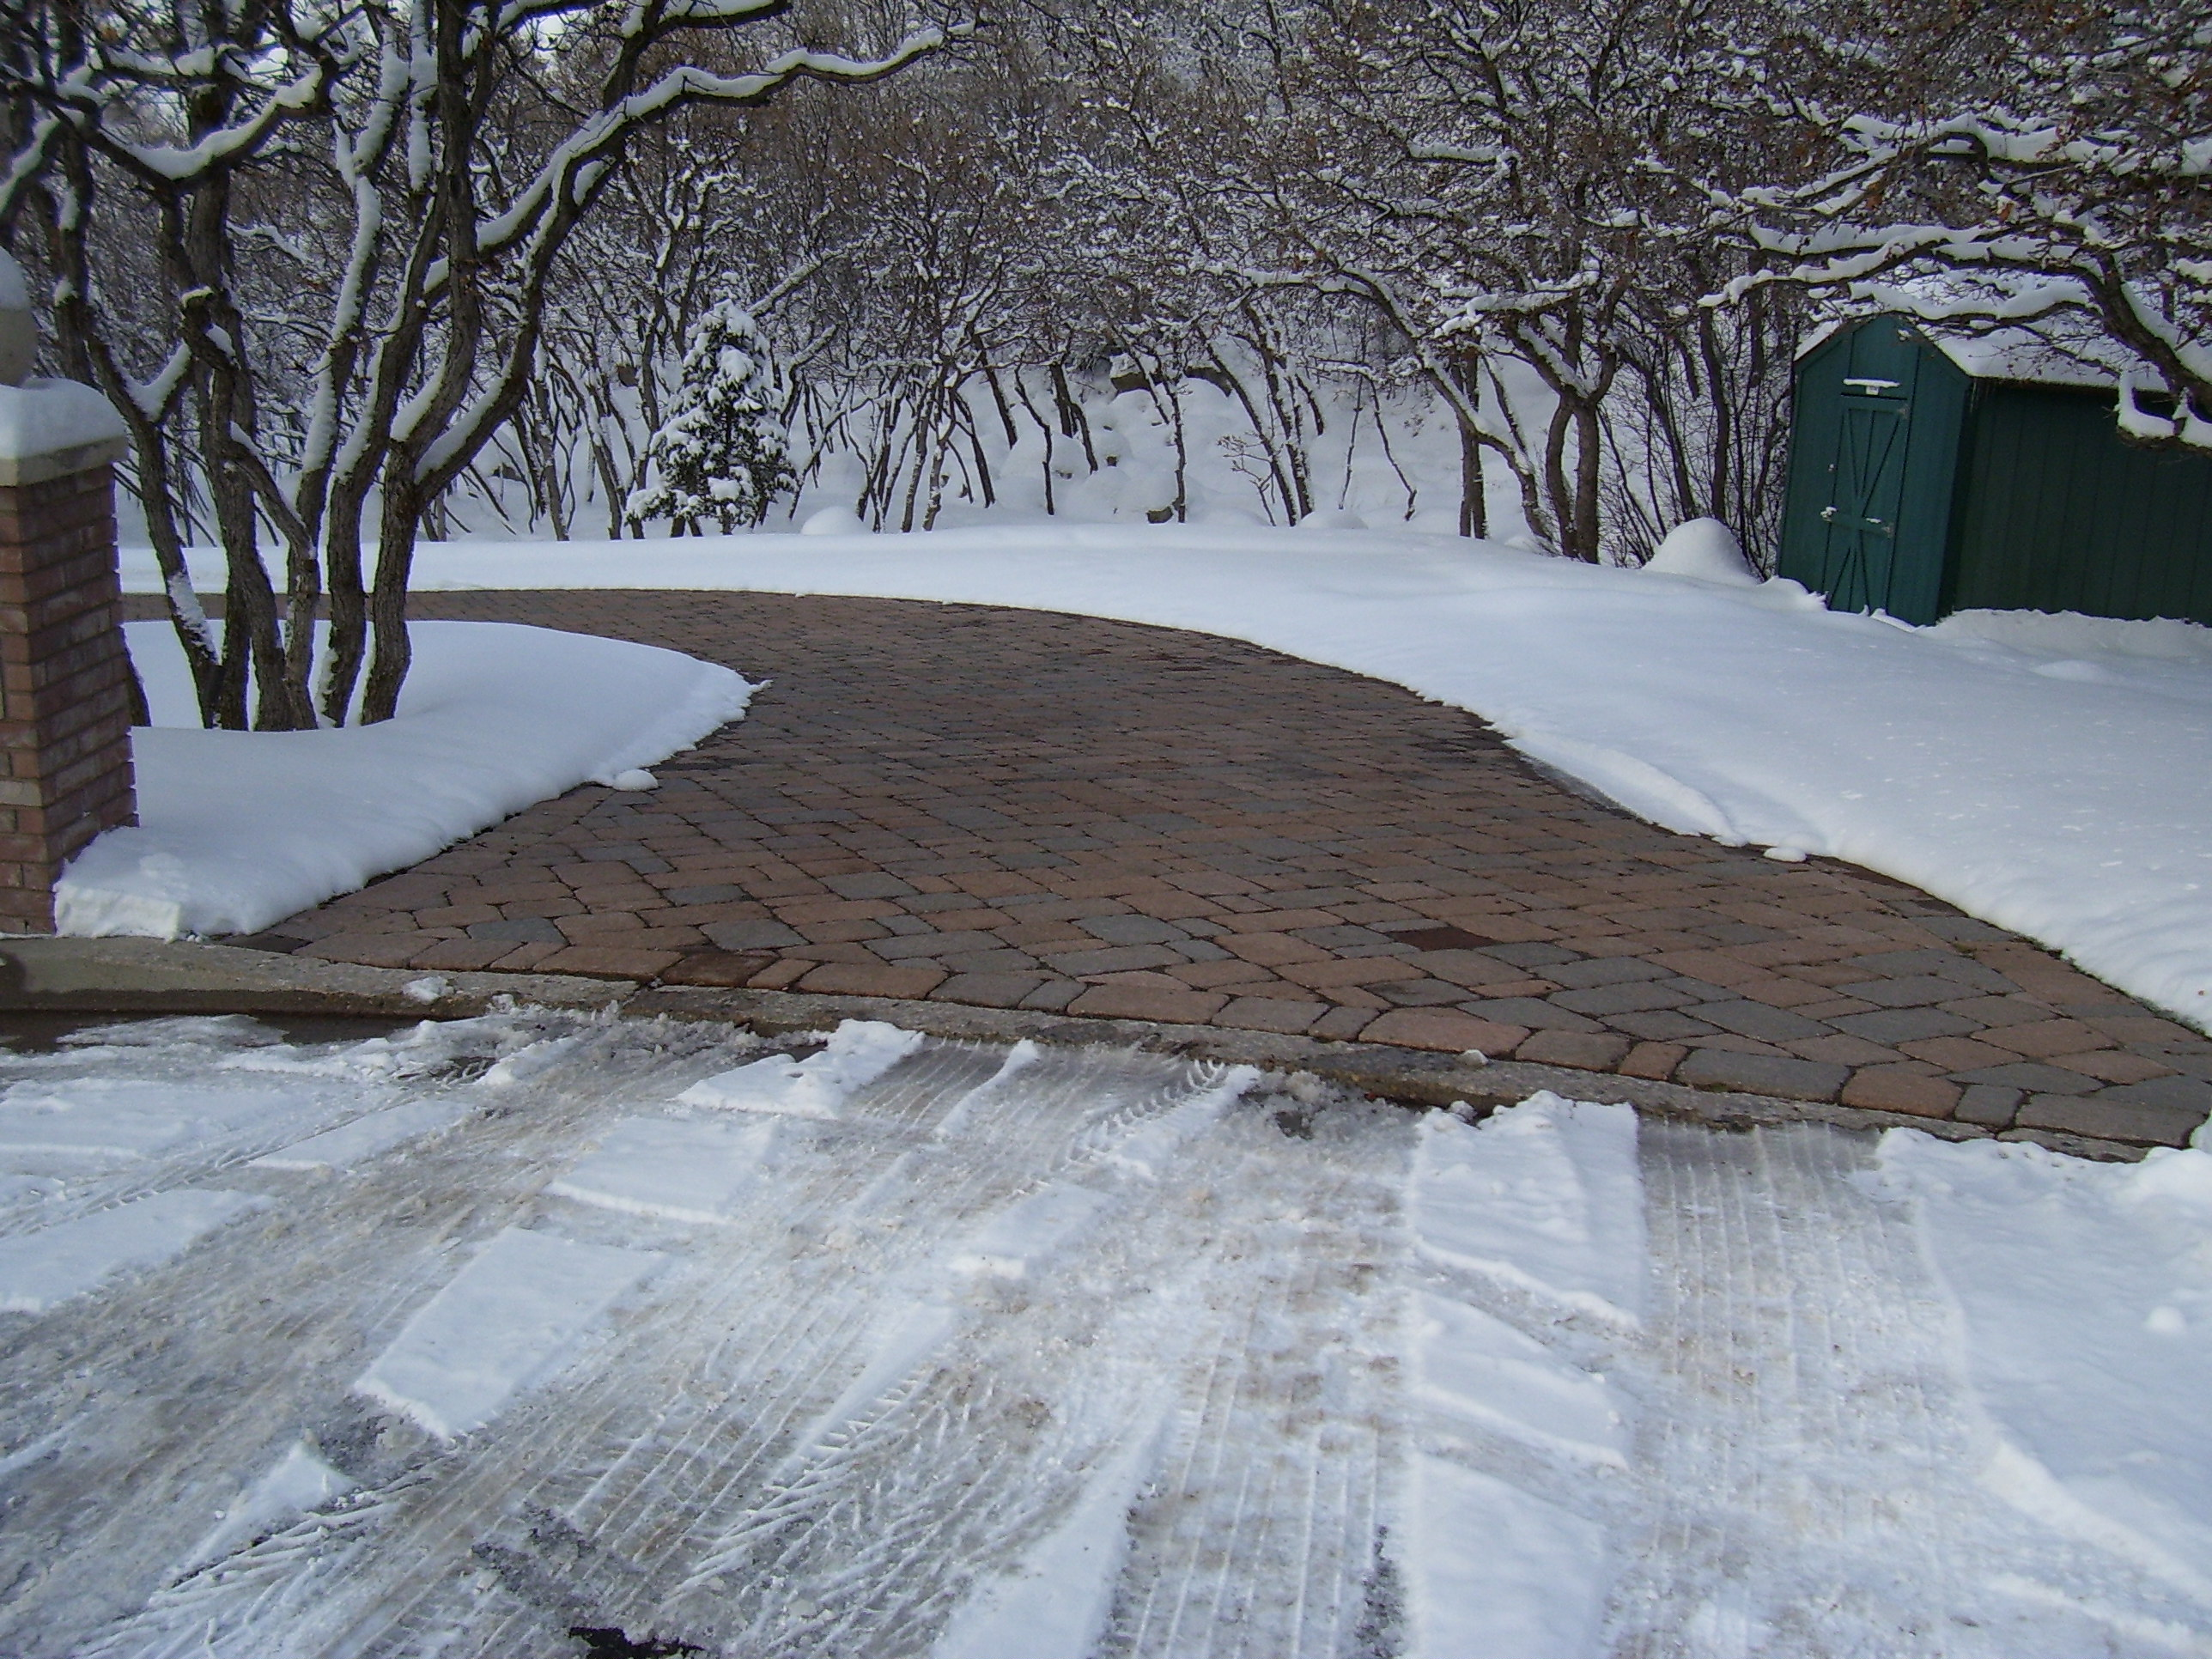 Warmzone Promotes Heated Driveways To Battle The Miserable